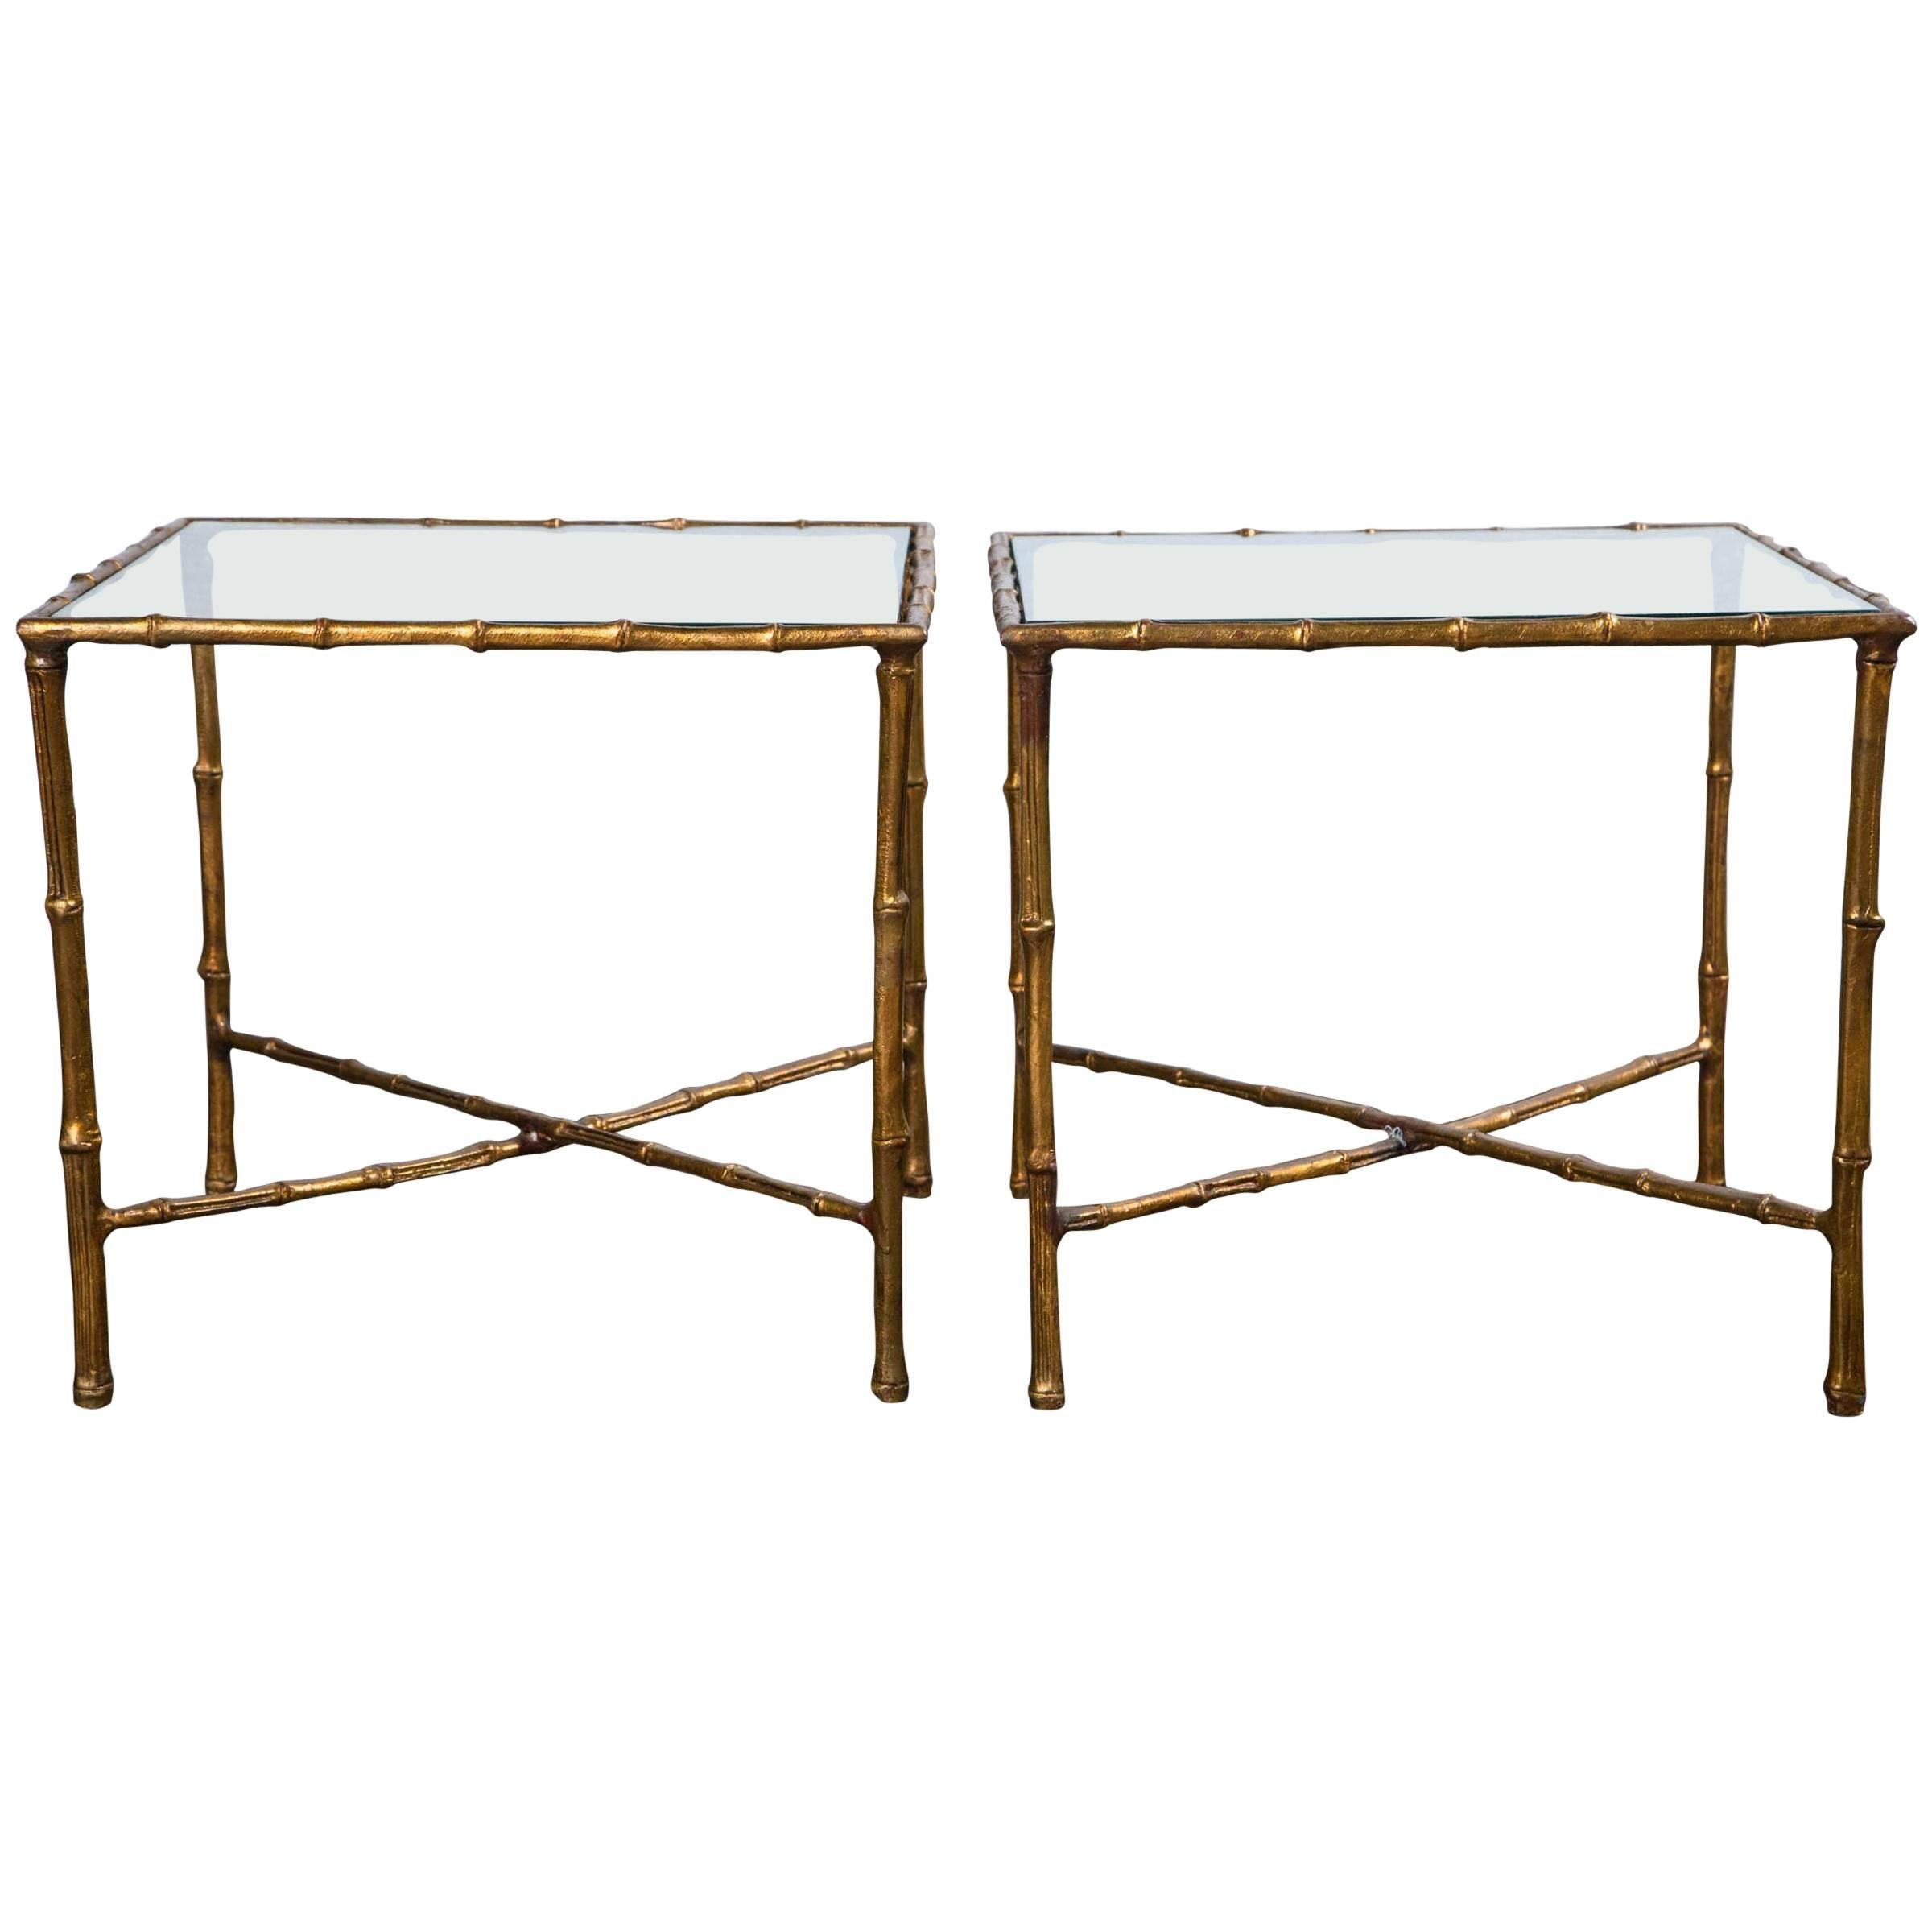 Pair of Gilt Metal Faux Bamboo Glass Top Tables